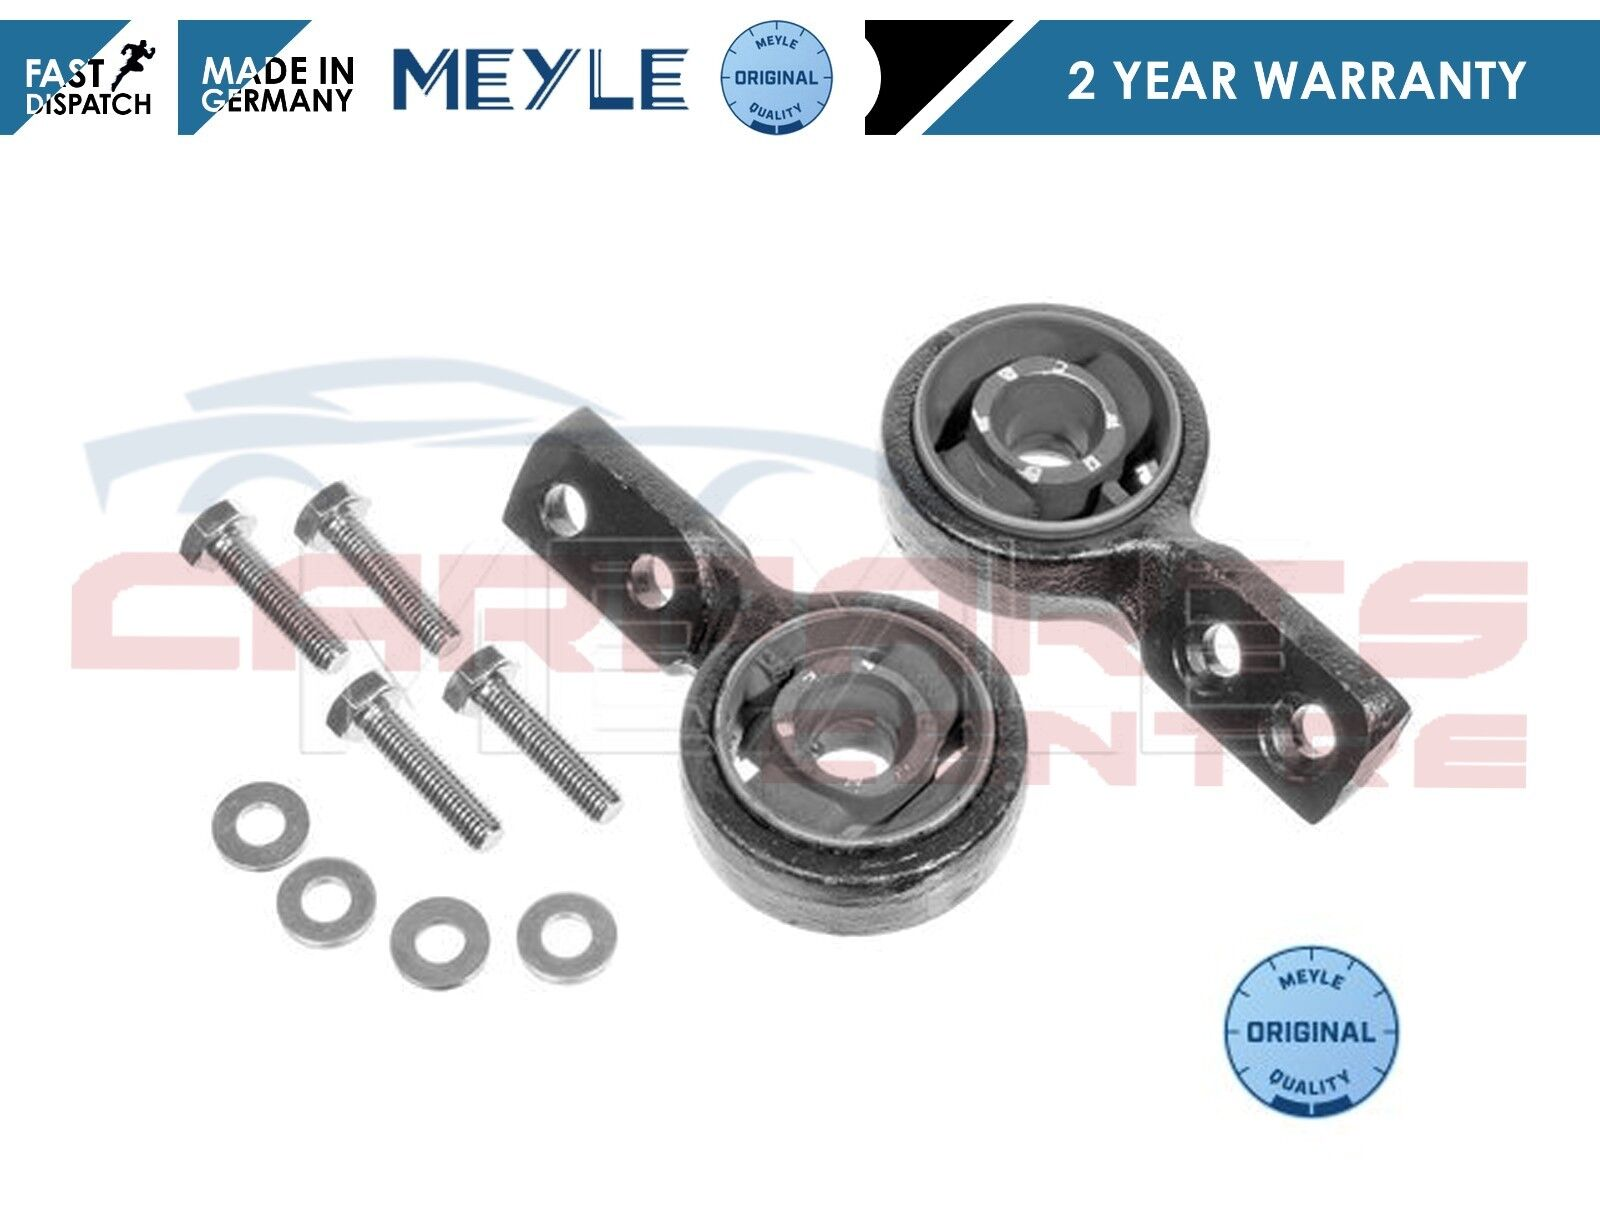 BMW 3 SERIES E30 FRONT LOWER WISHBONE ARMS BUSHES X 2